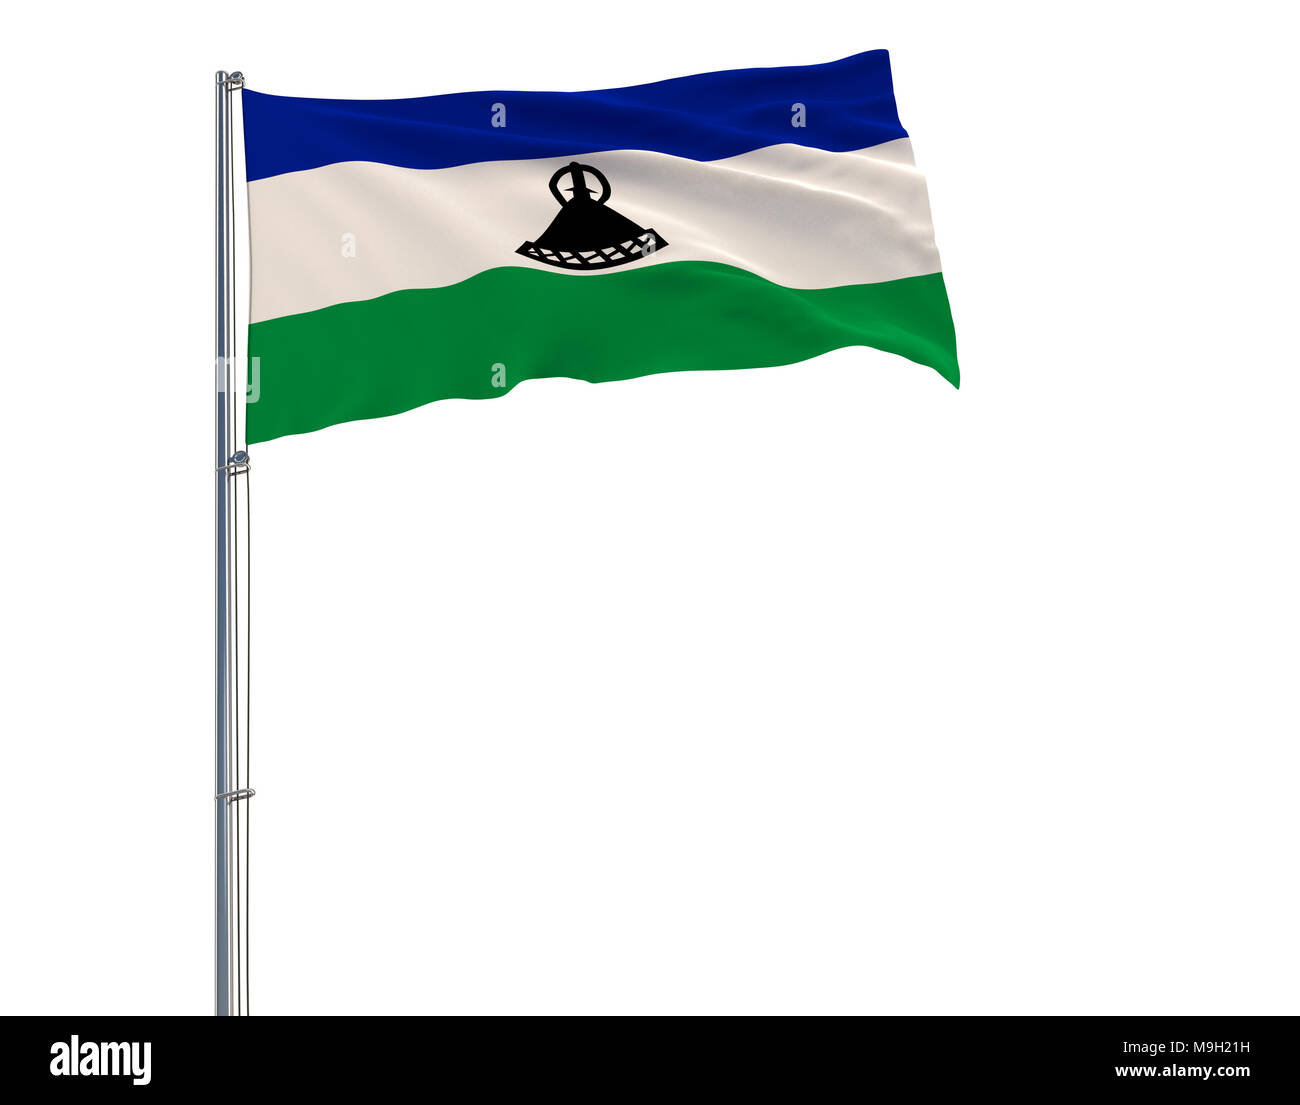 Isolate flag of Kingdom of Lesotho on a flagpole fluttering in the wind on a white background - Stock Image